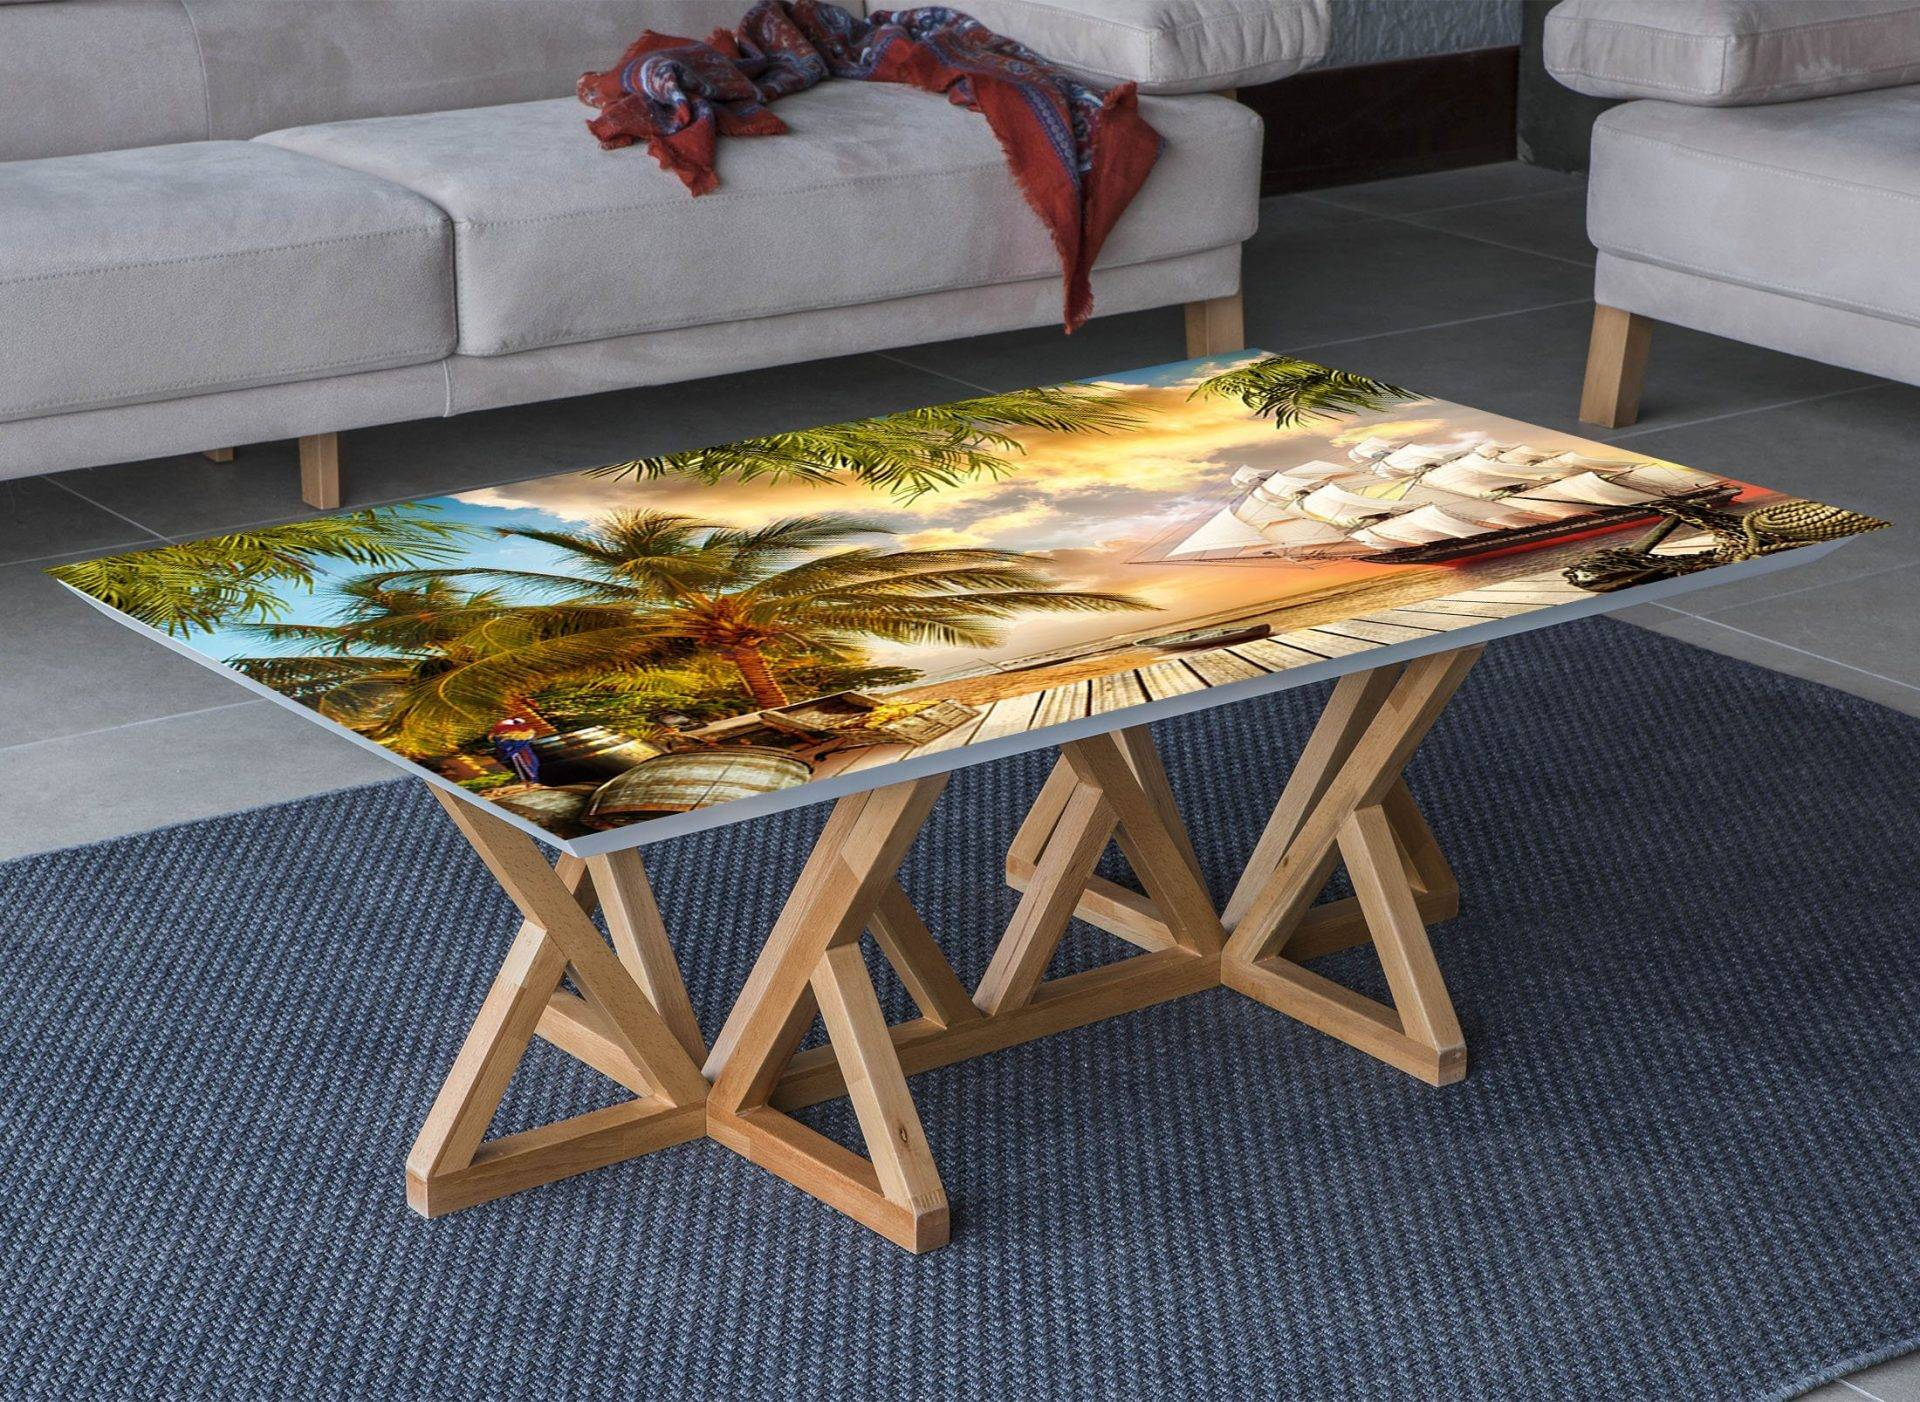 Pirates Palm Beach View Laminated Vinyl Cover Self-Adhesive for Desk and Tables